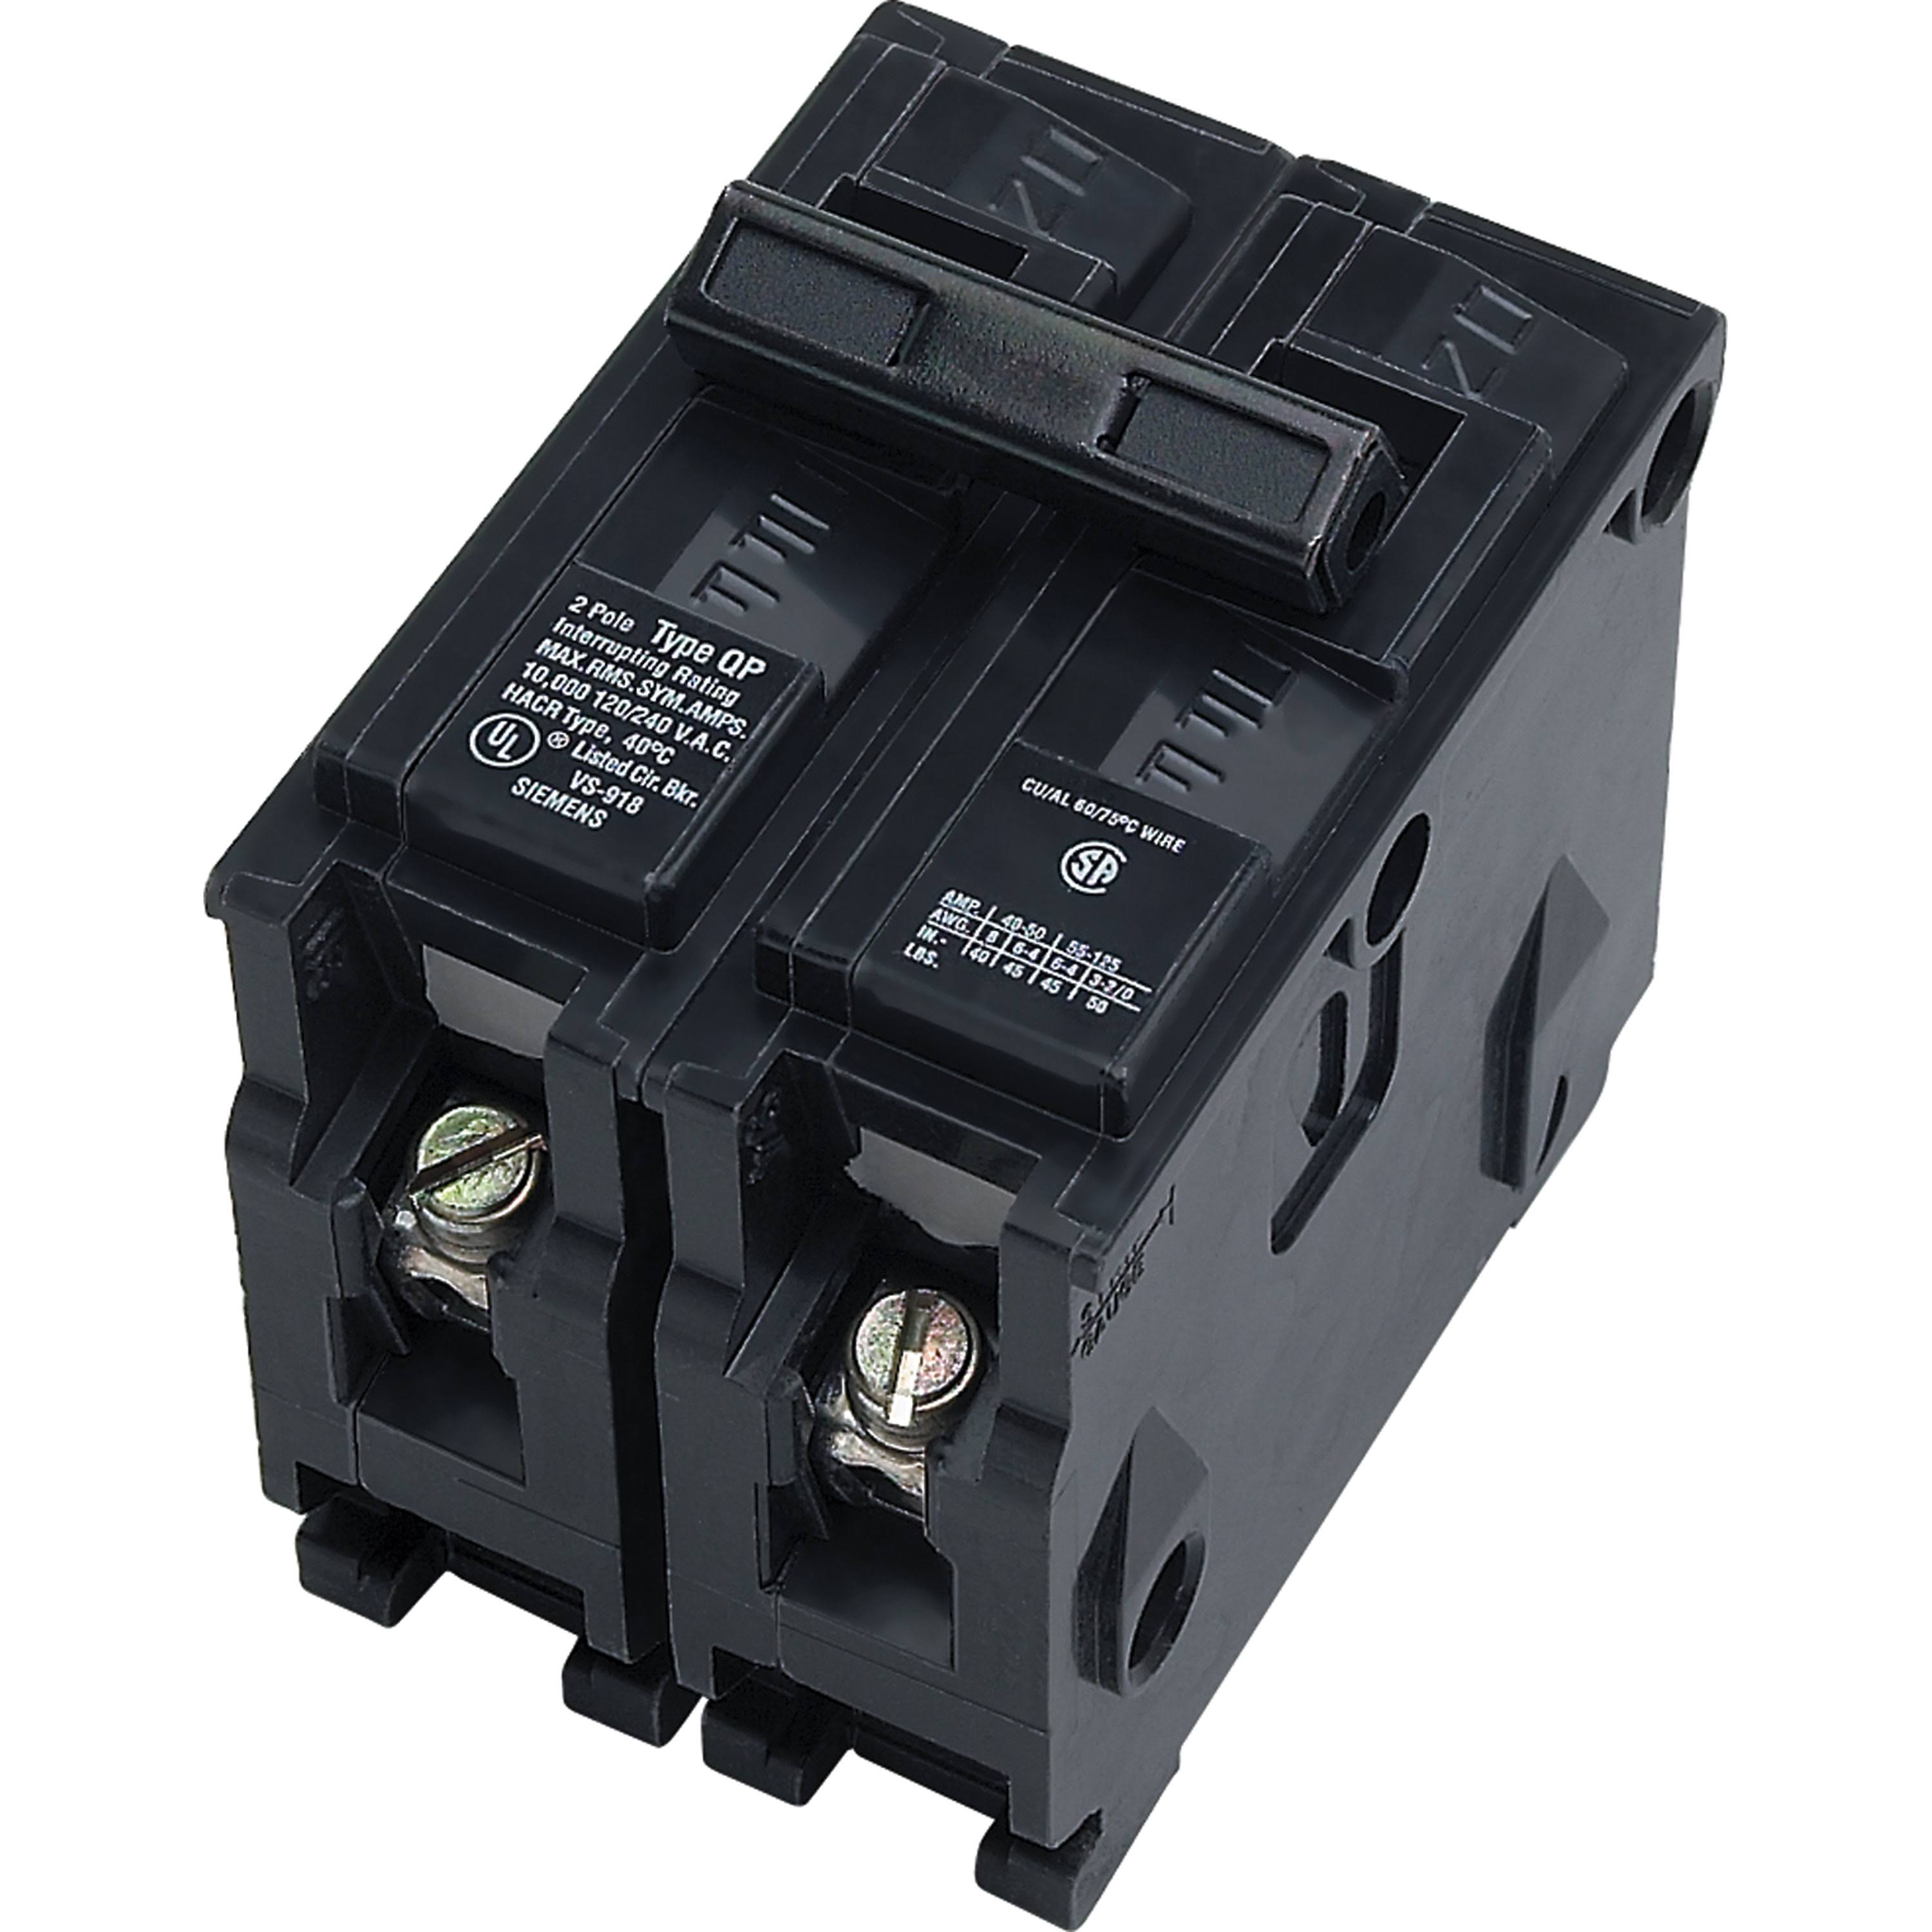 Siemens Double-Pole Type QP Circuit Breaker - 50 Amp, 240V